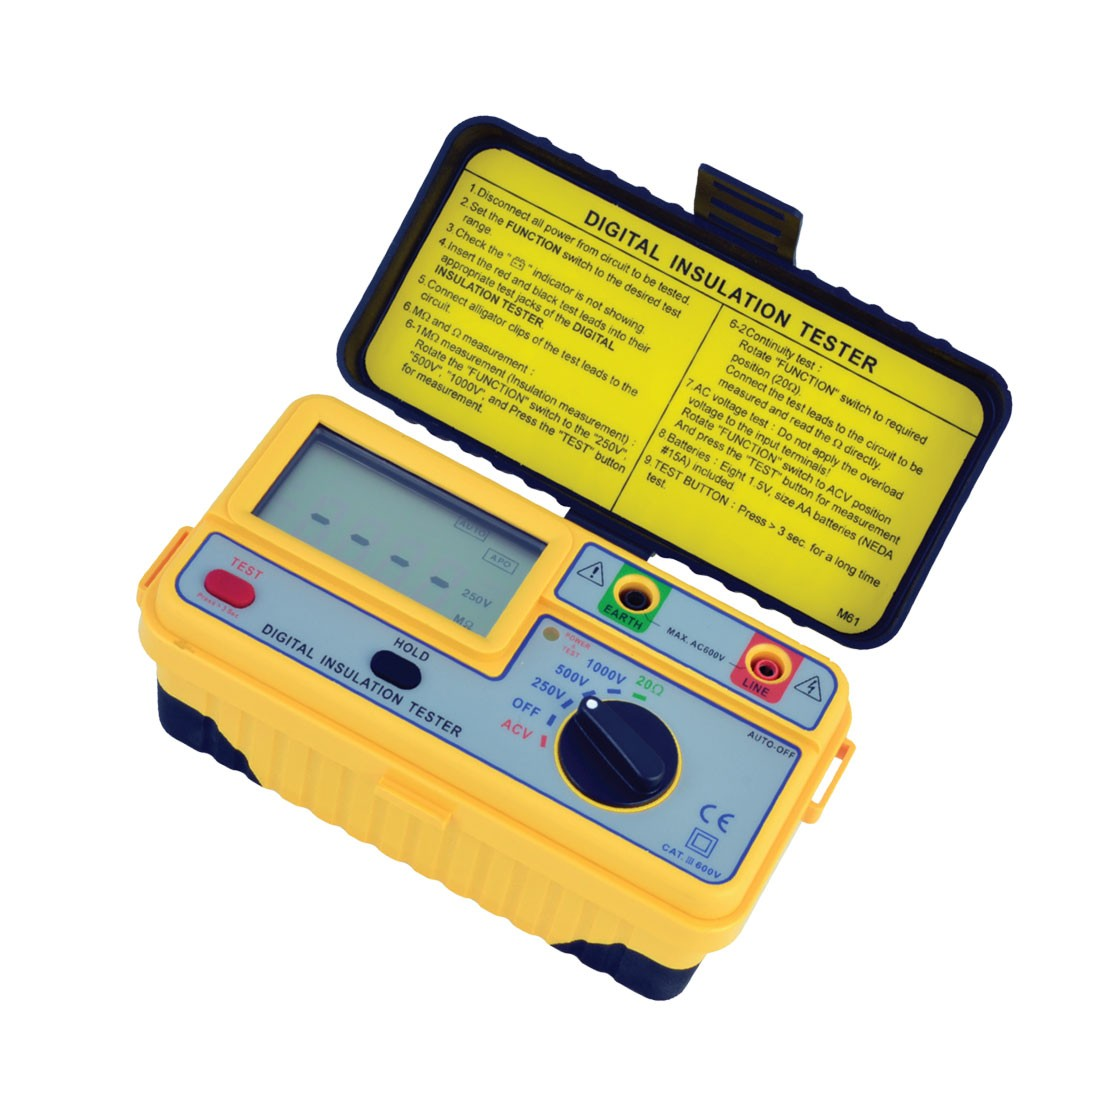 1161IN Series: Digital (Up to 1kV) Insulation Tester